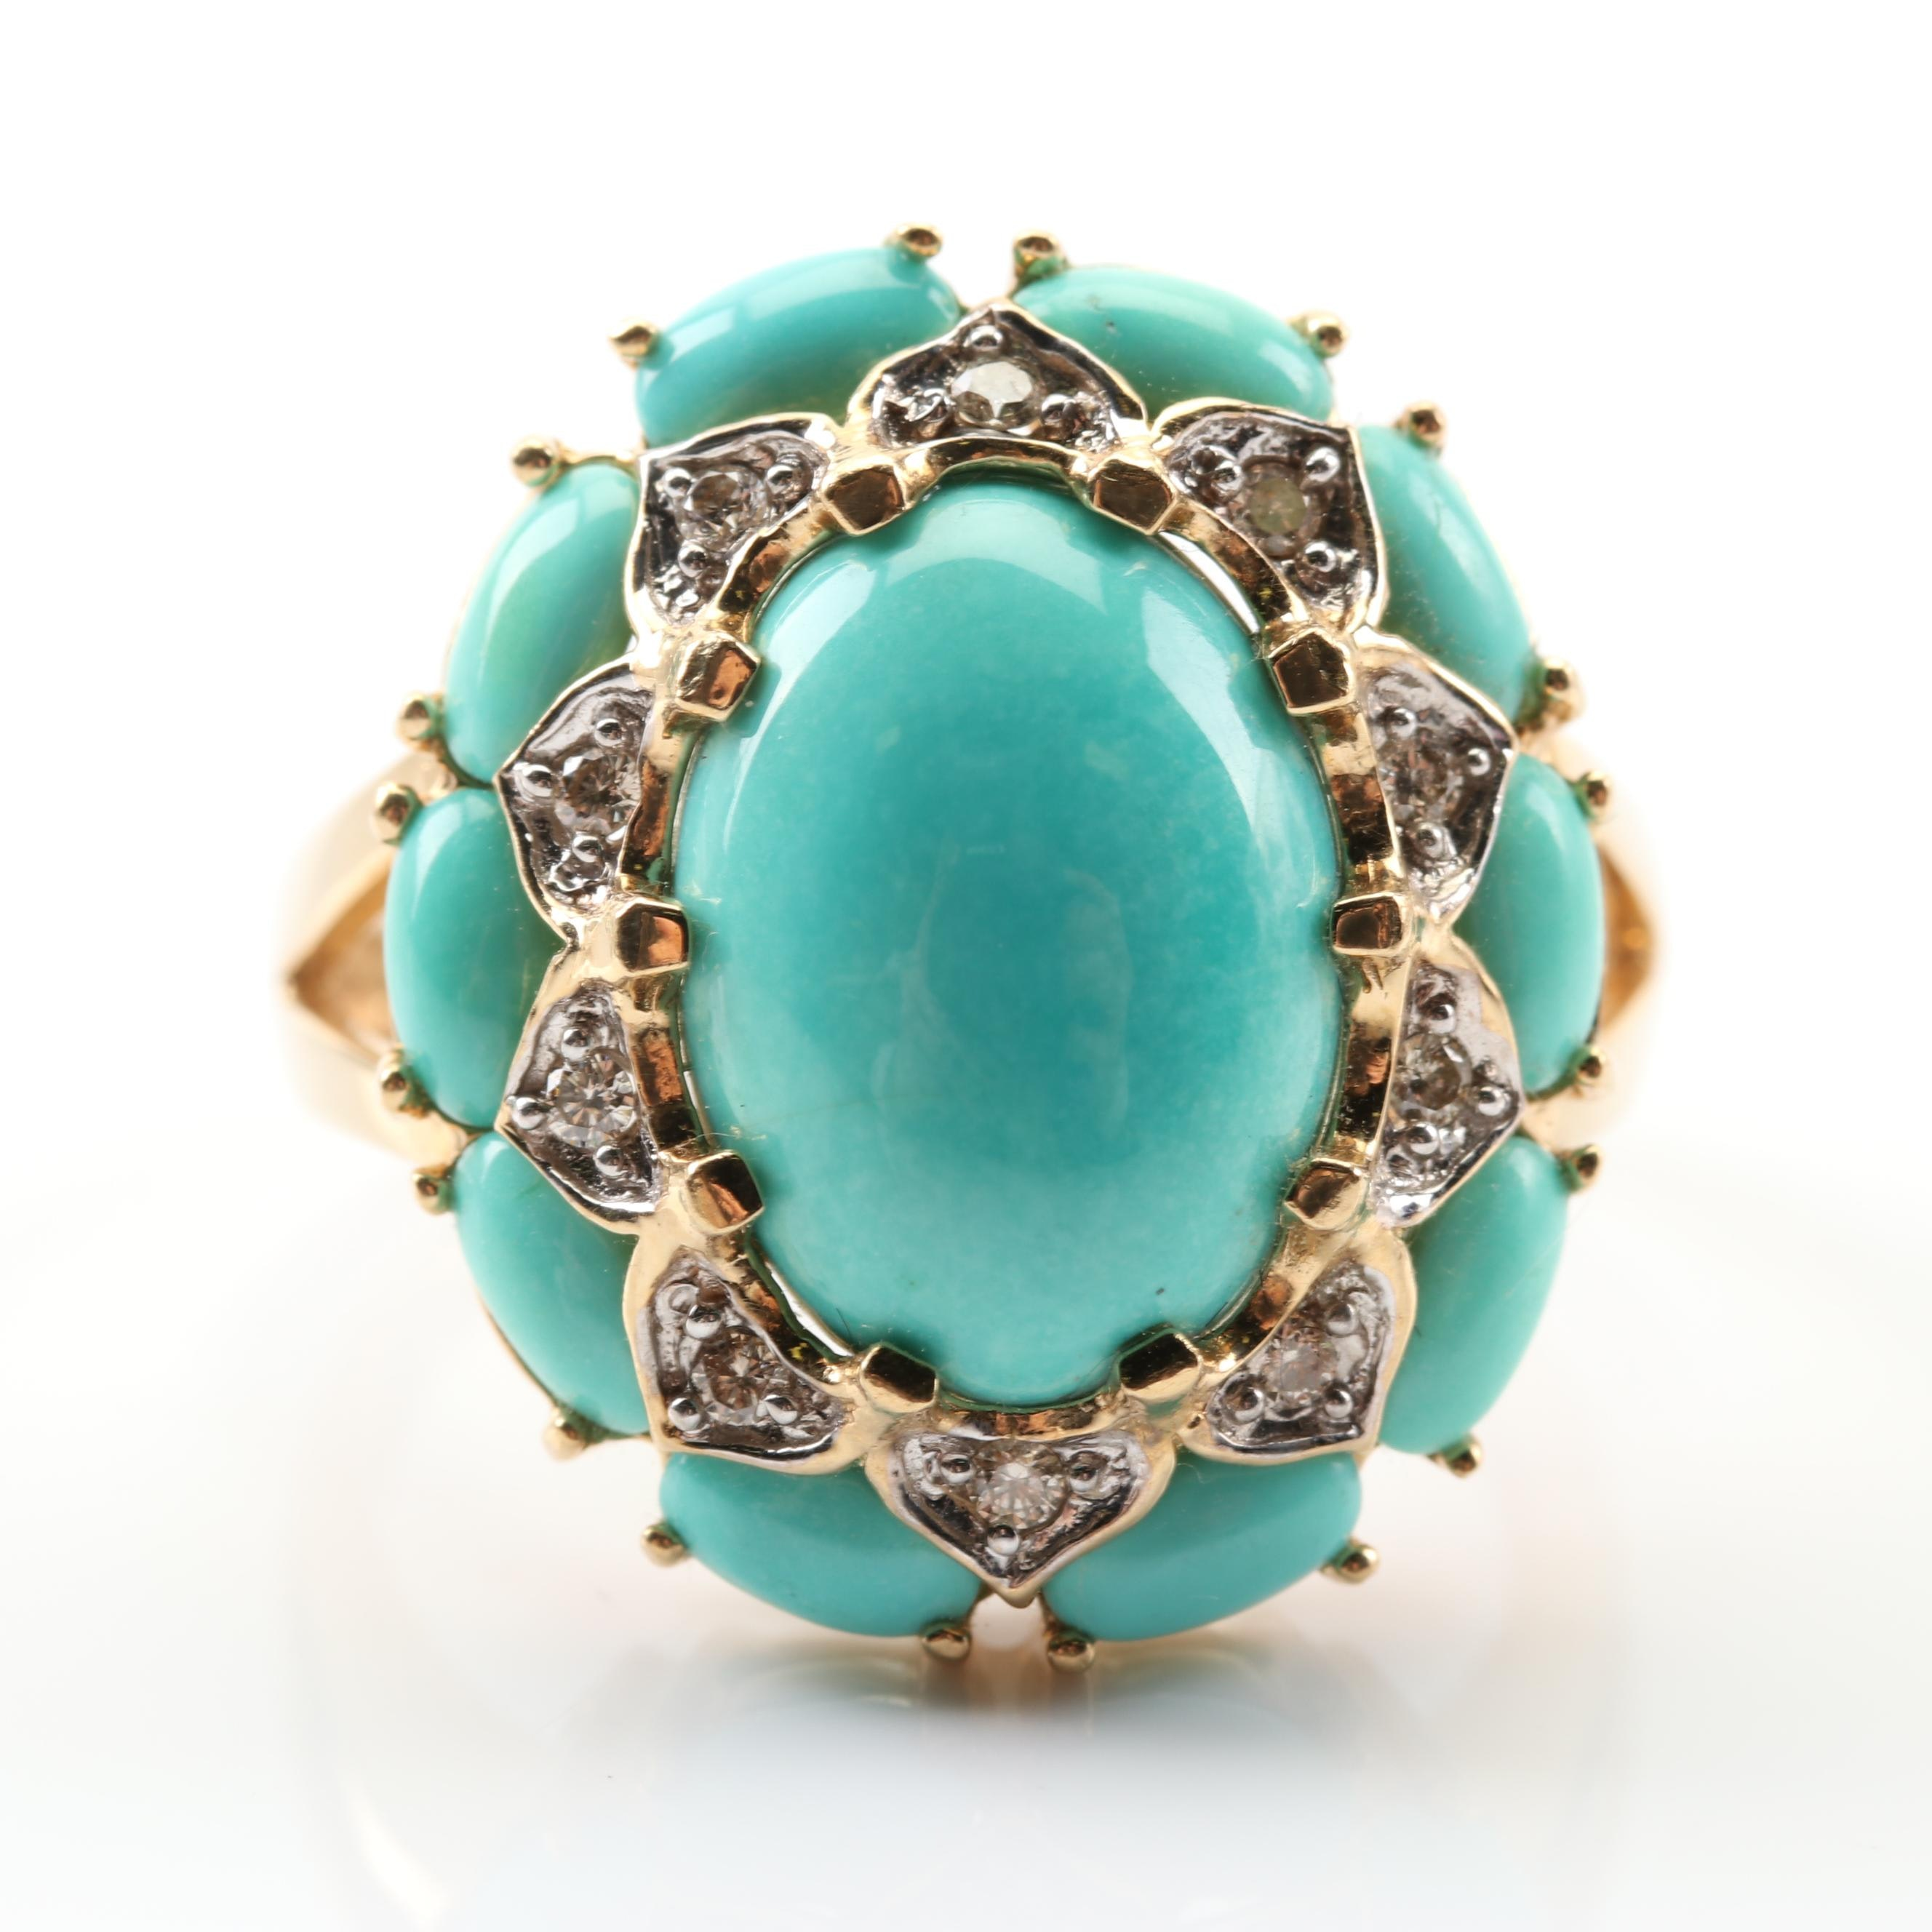 LeVian 14K Yellow Gold Turquoise and Diamond Ring